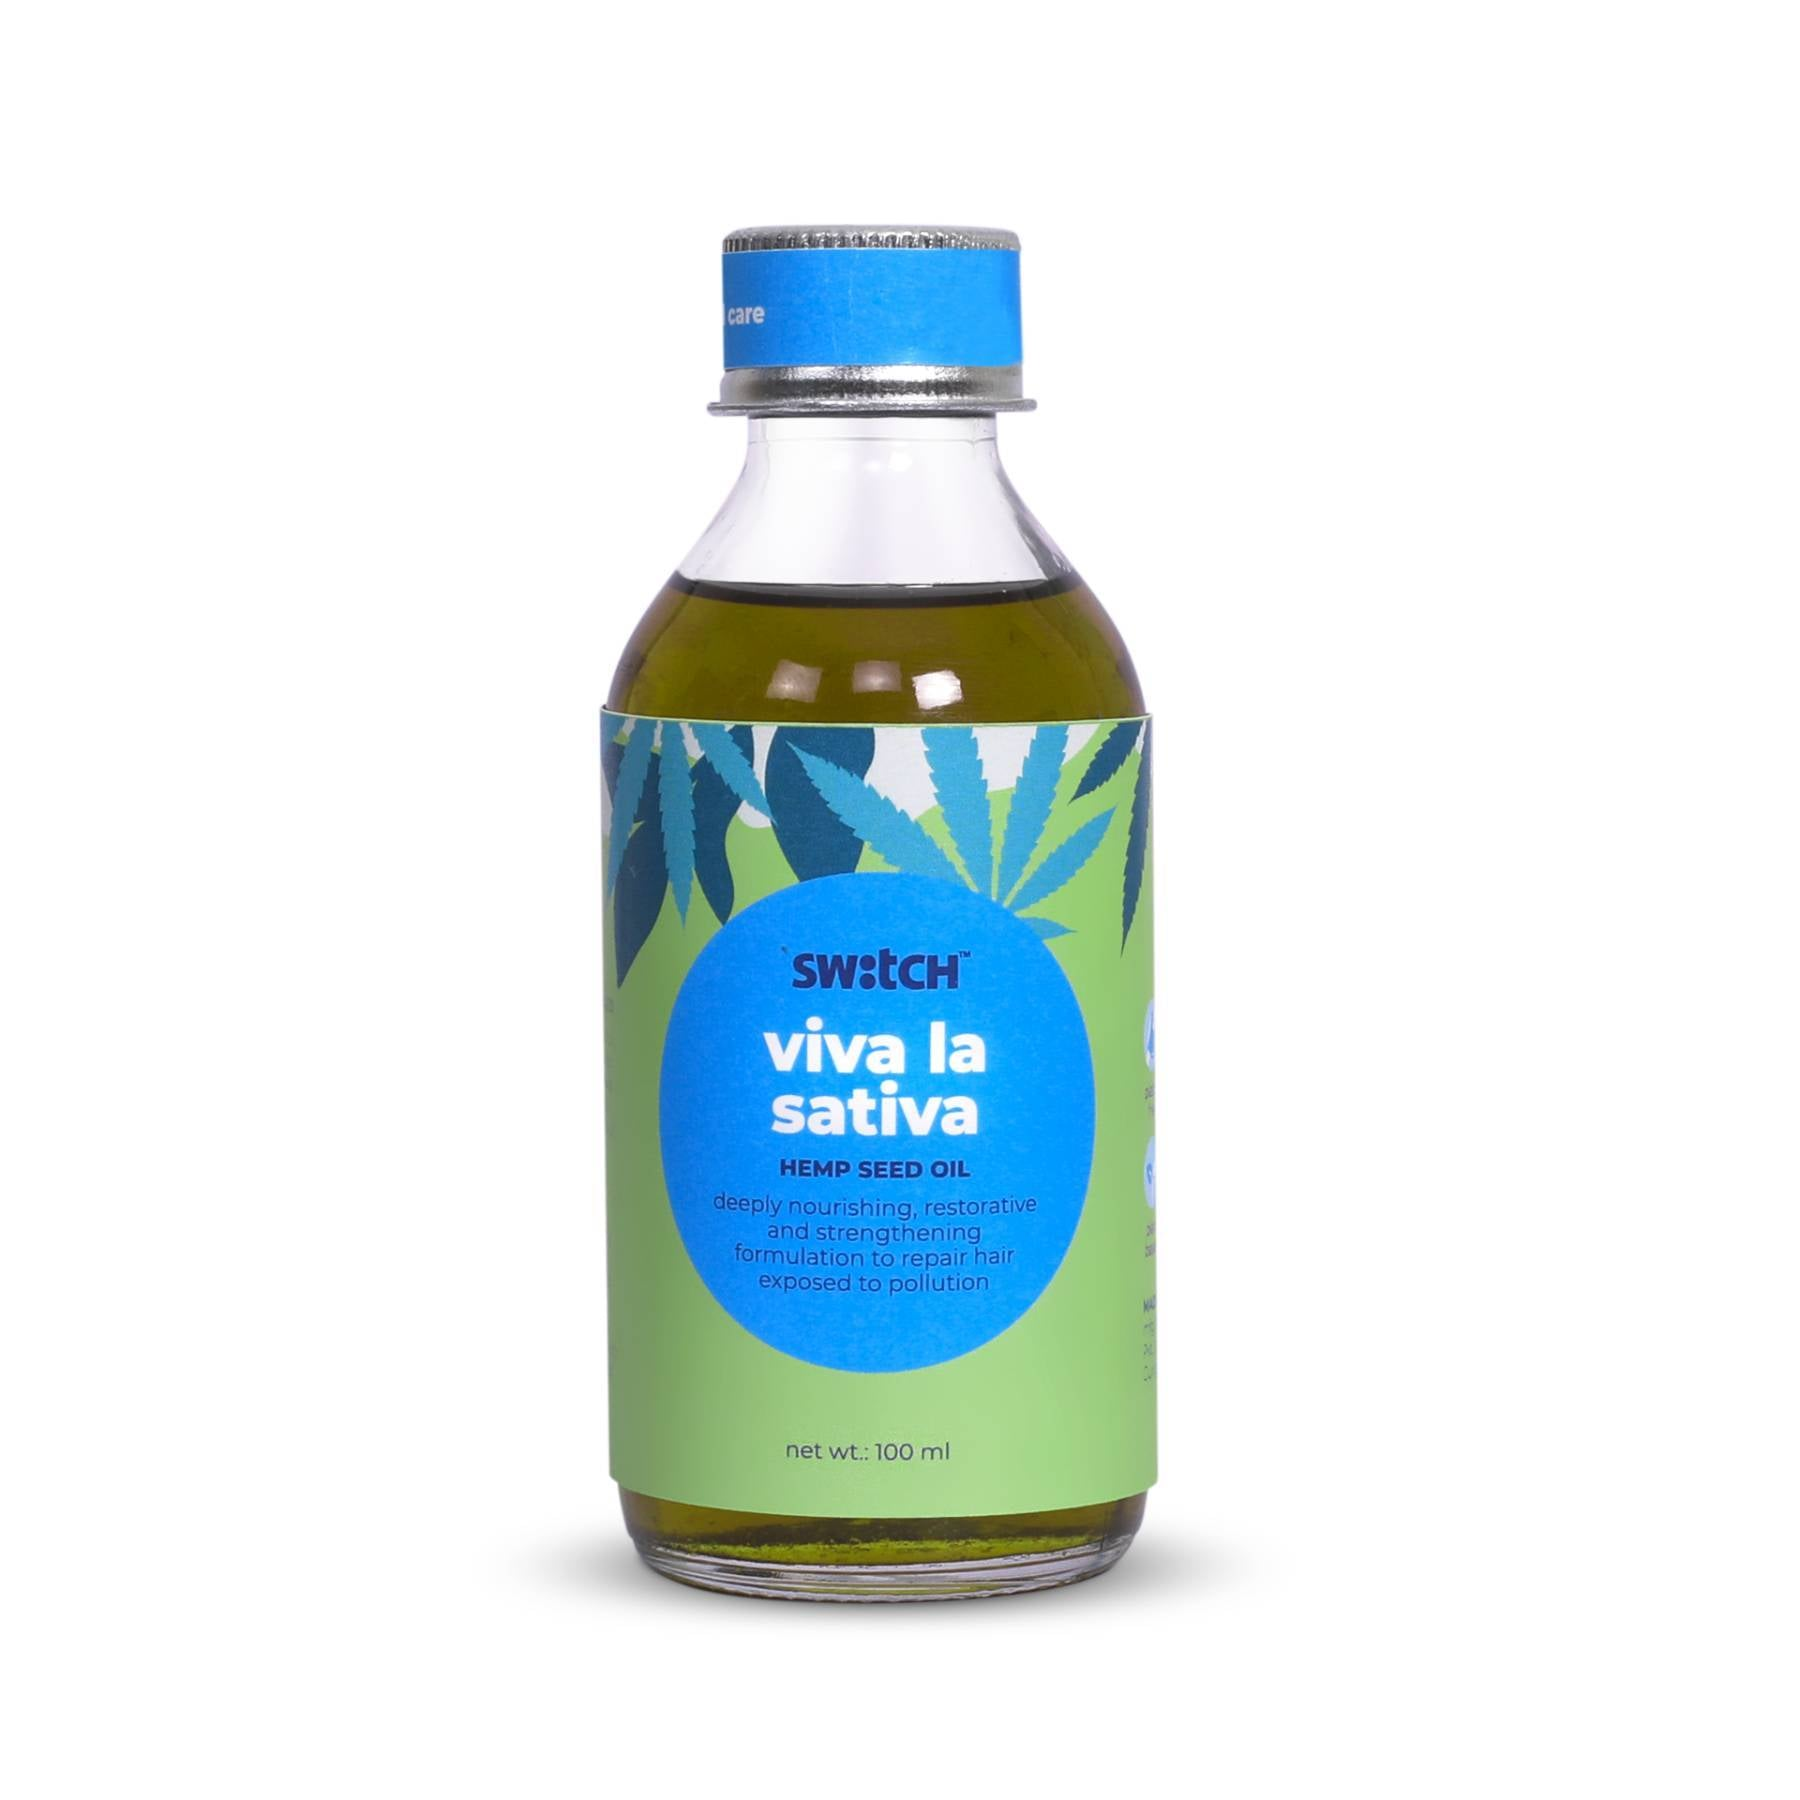 This is an image of Viva La Sativa hair oil from switch fix on www.sublimelife.in